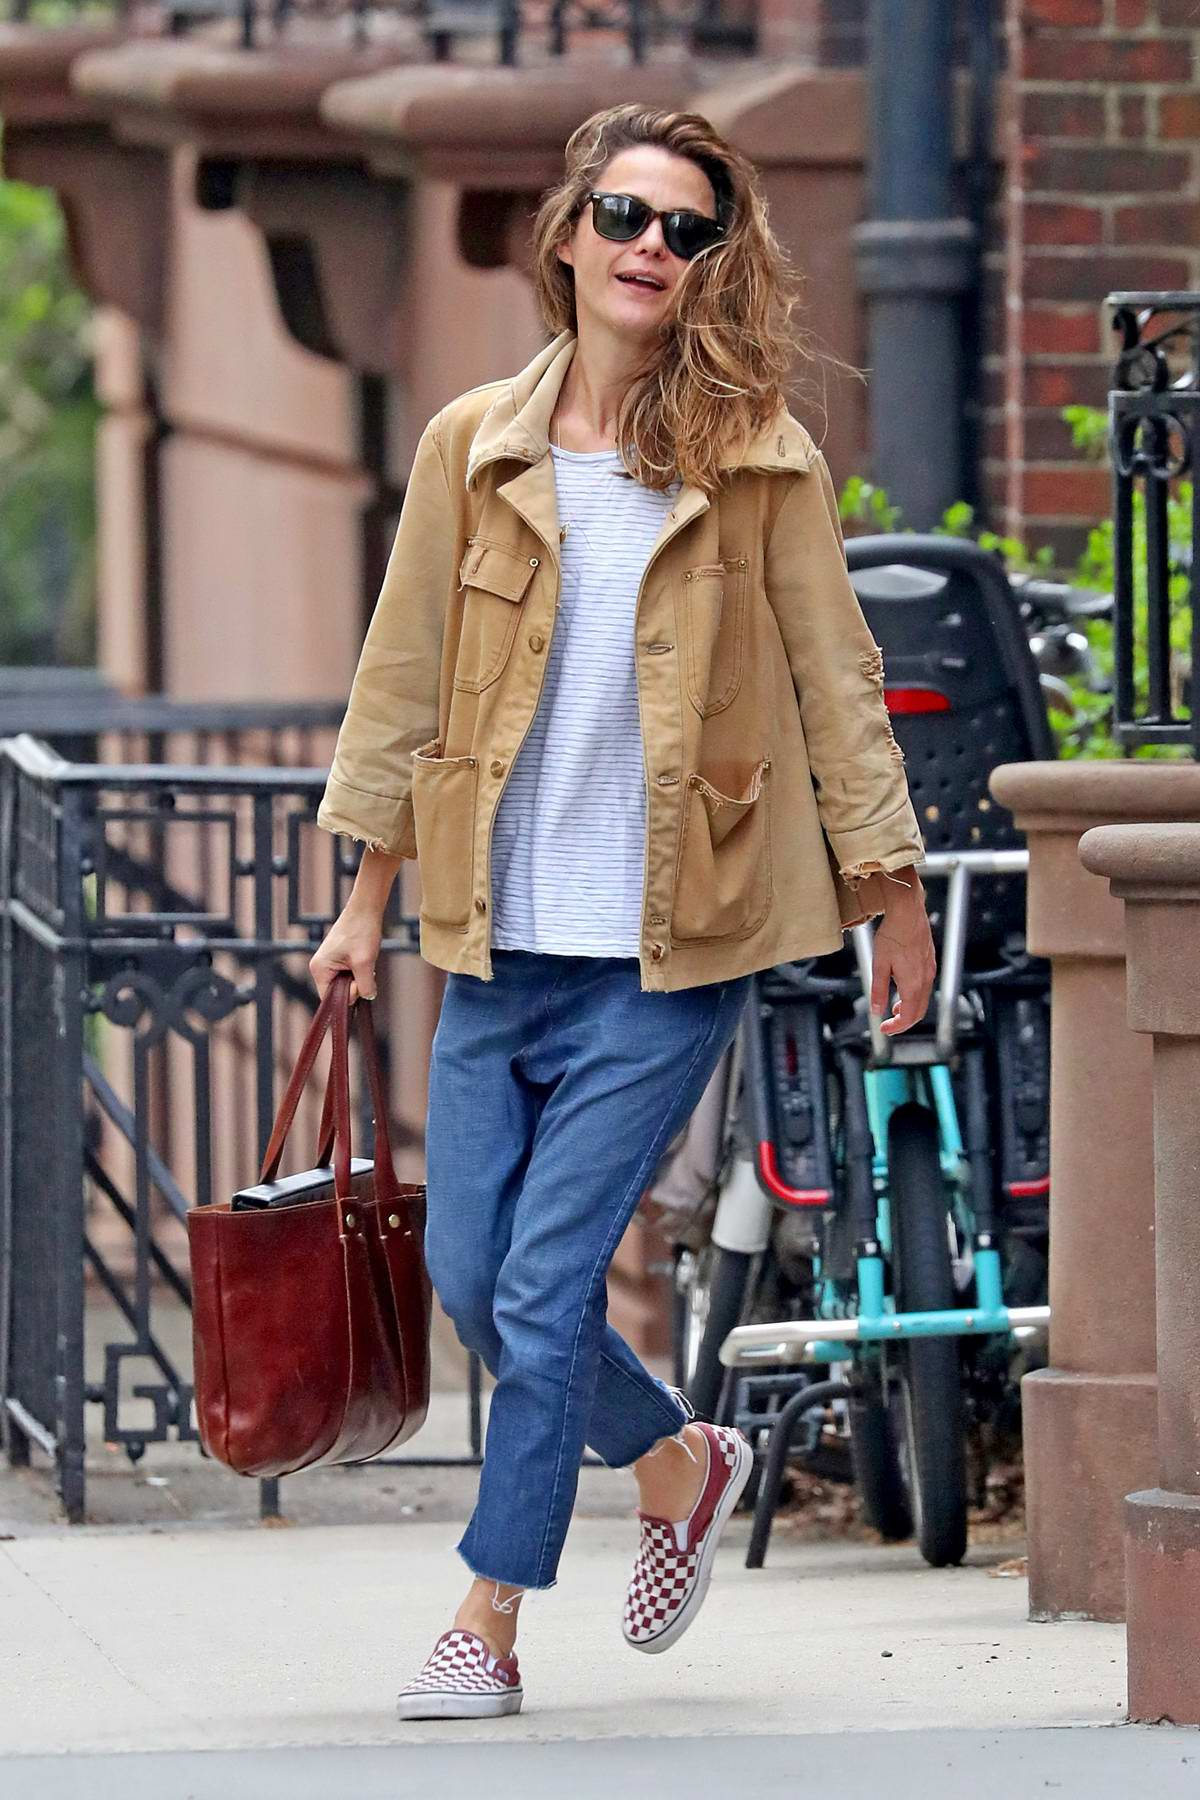 Keri Russell shared a hug with Matthew Rhys before heading out in New York City